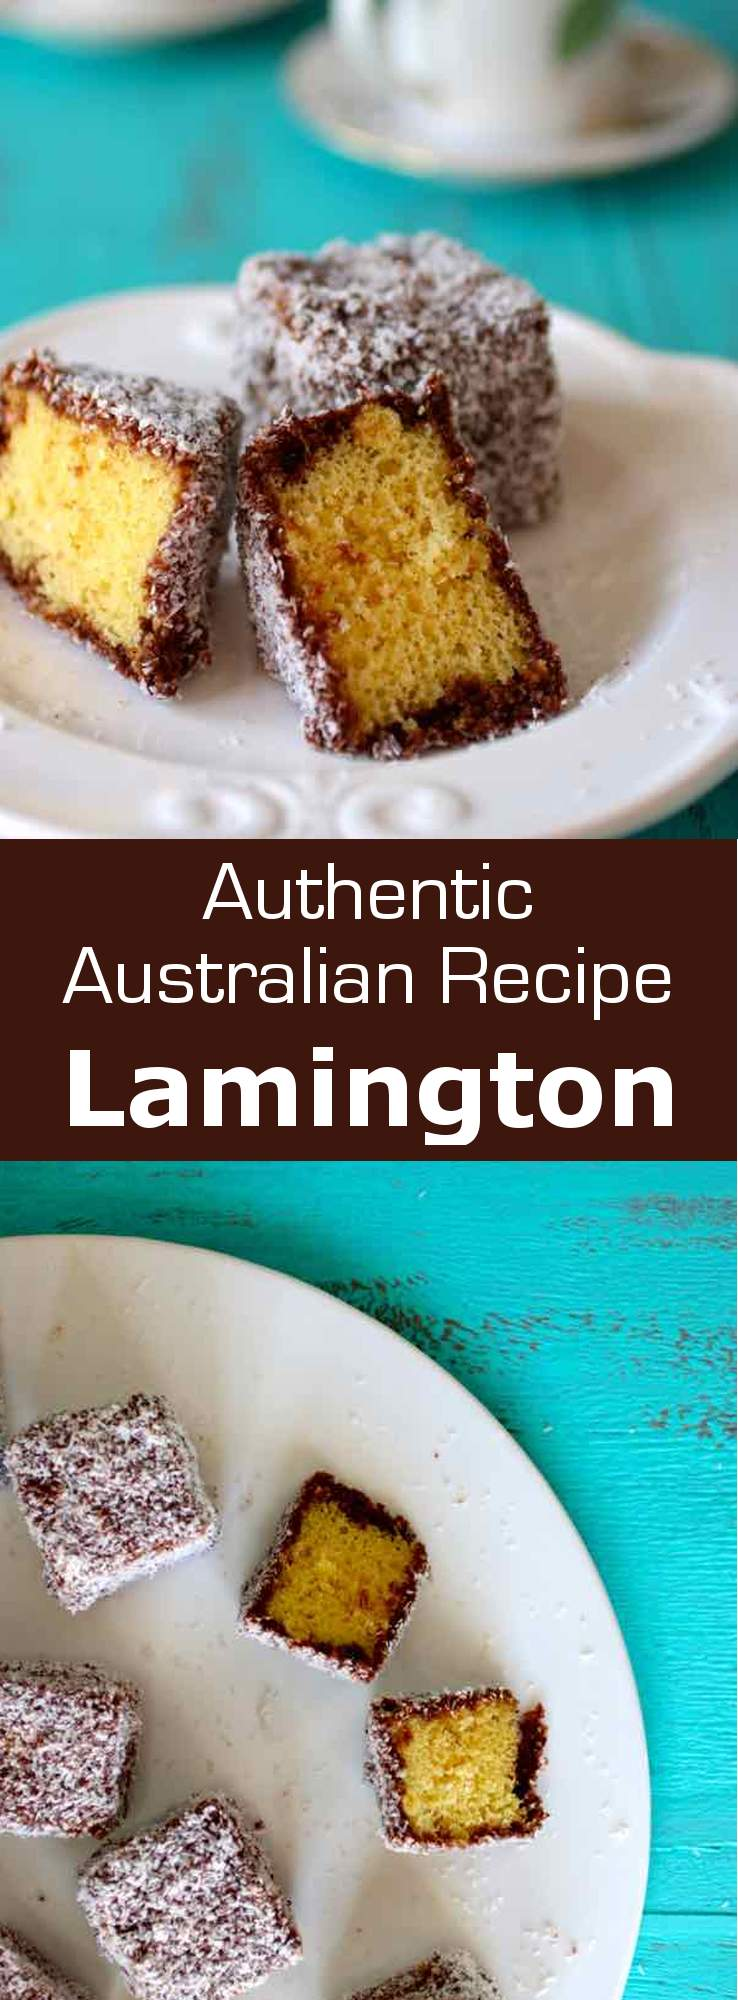 Lamington is an Australian dessert consisting of squares of sponge cake coated in a layer of chocolate sauce, then in shredded coconut. #Australia #196flavors